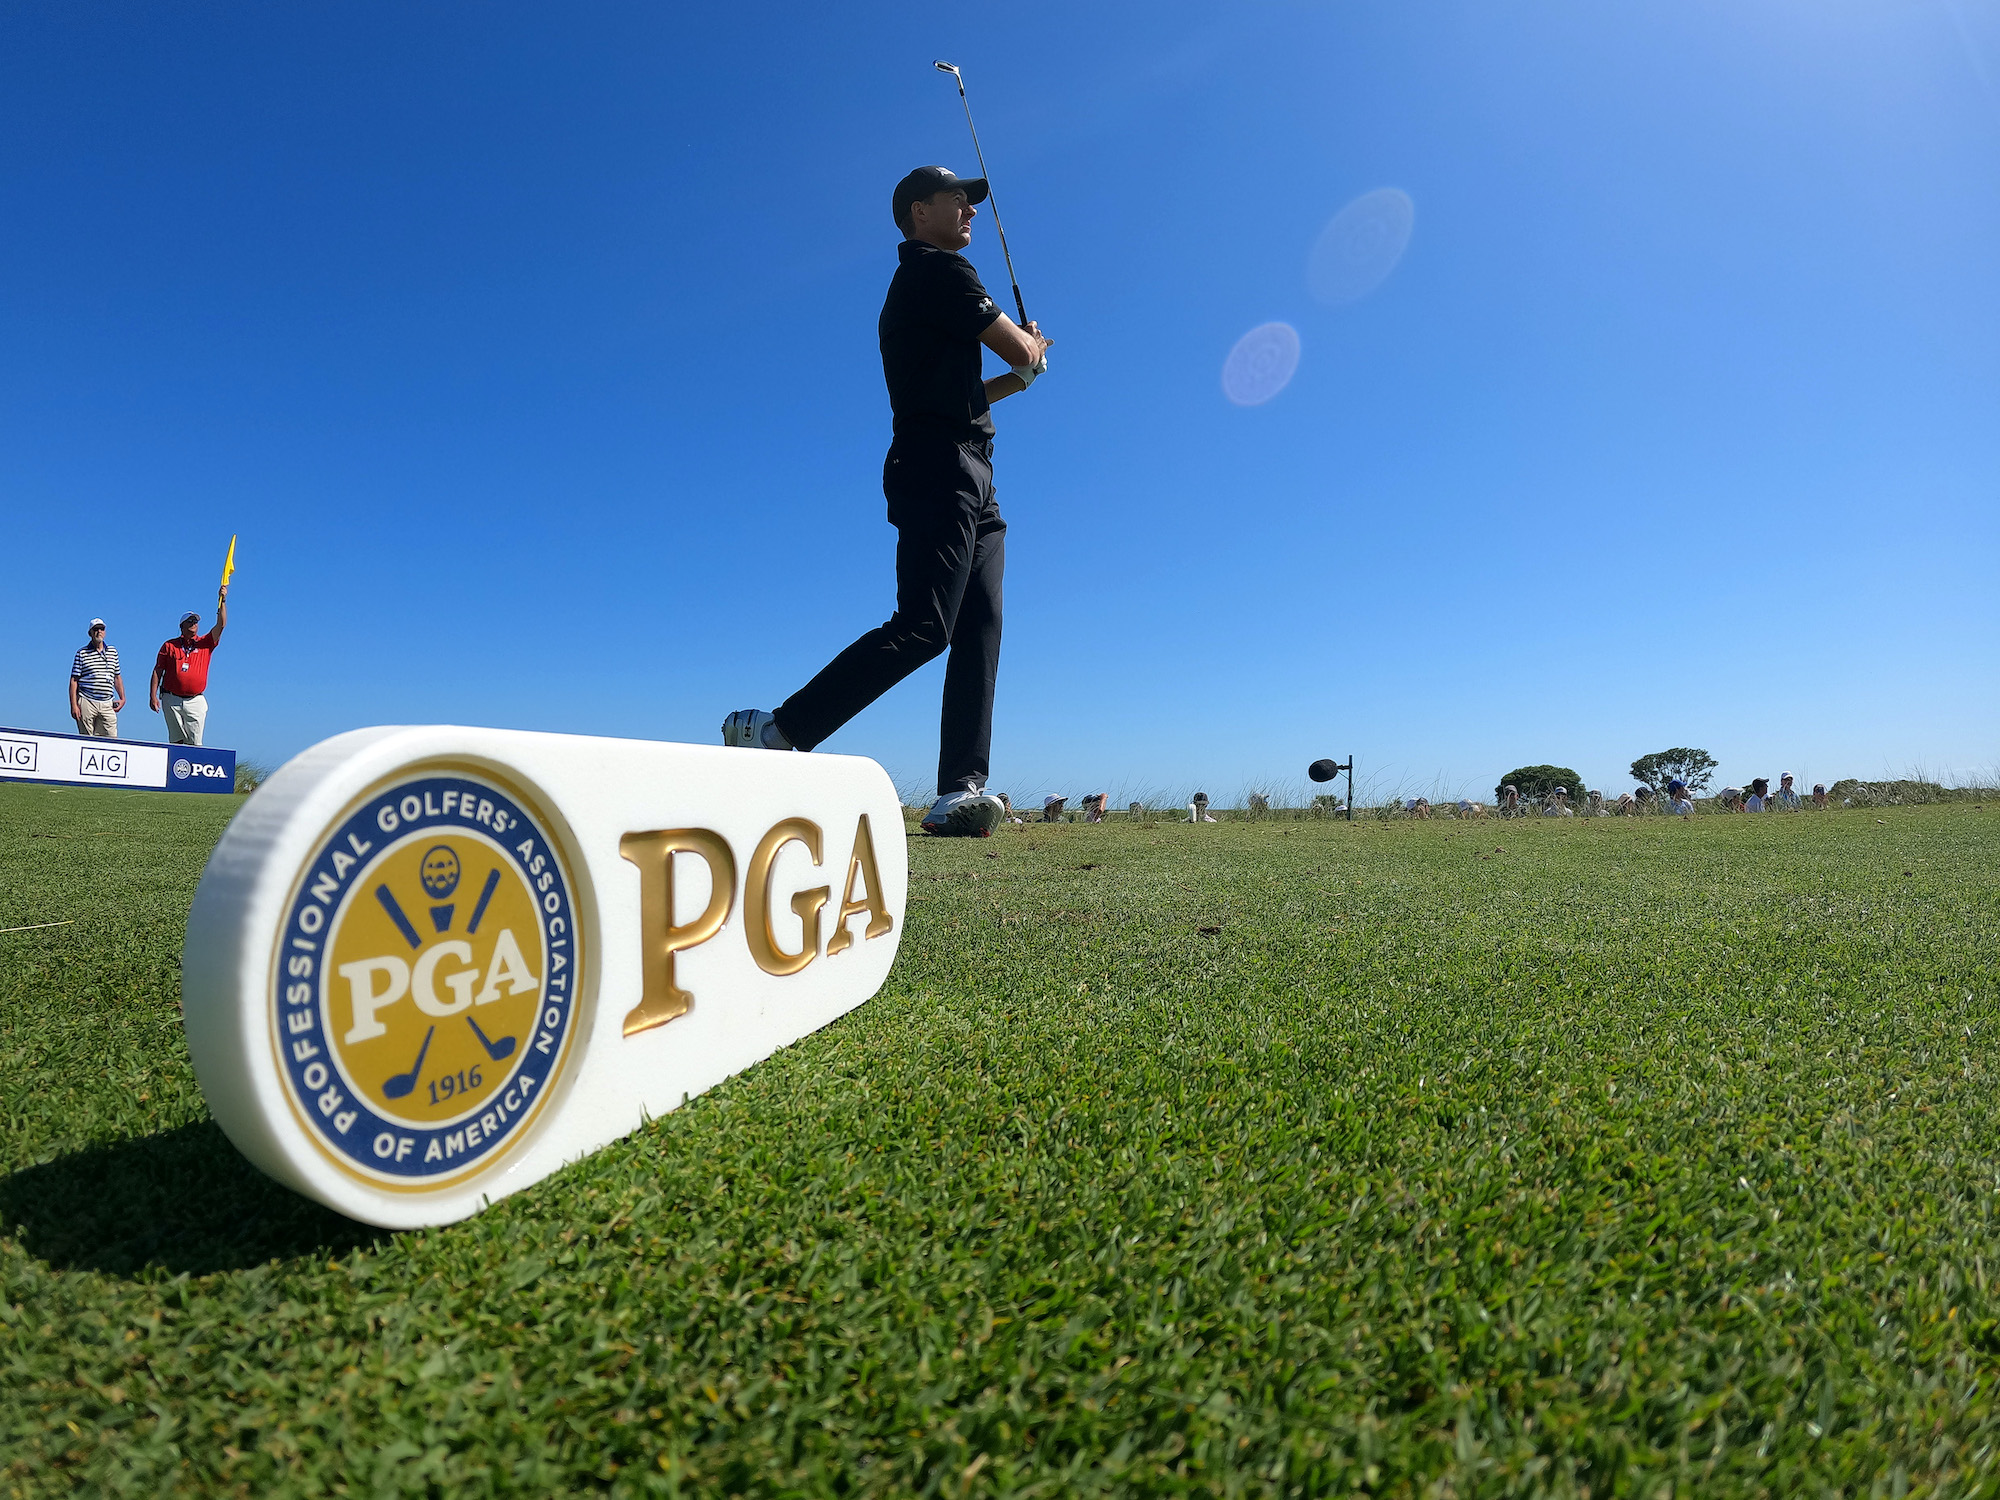 2021 PGA Championship: Round 1 - Shot From the 8th Tee